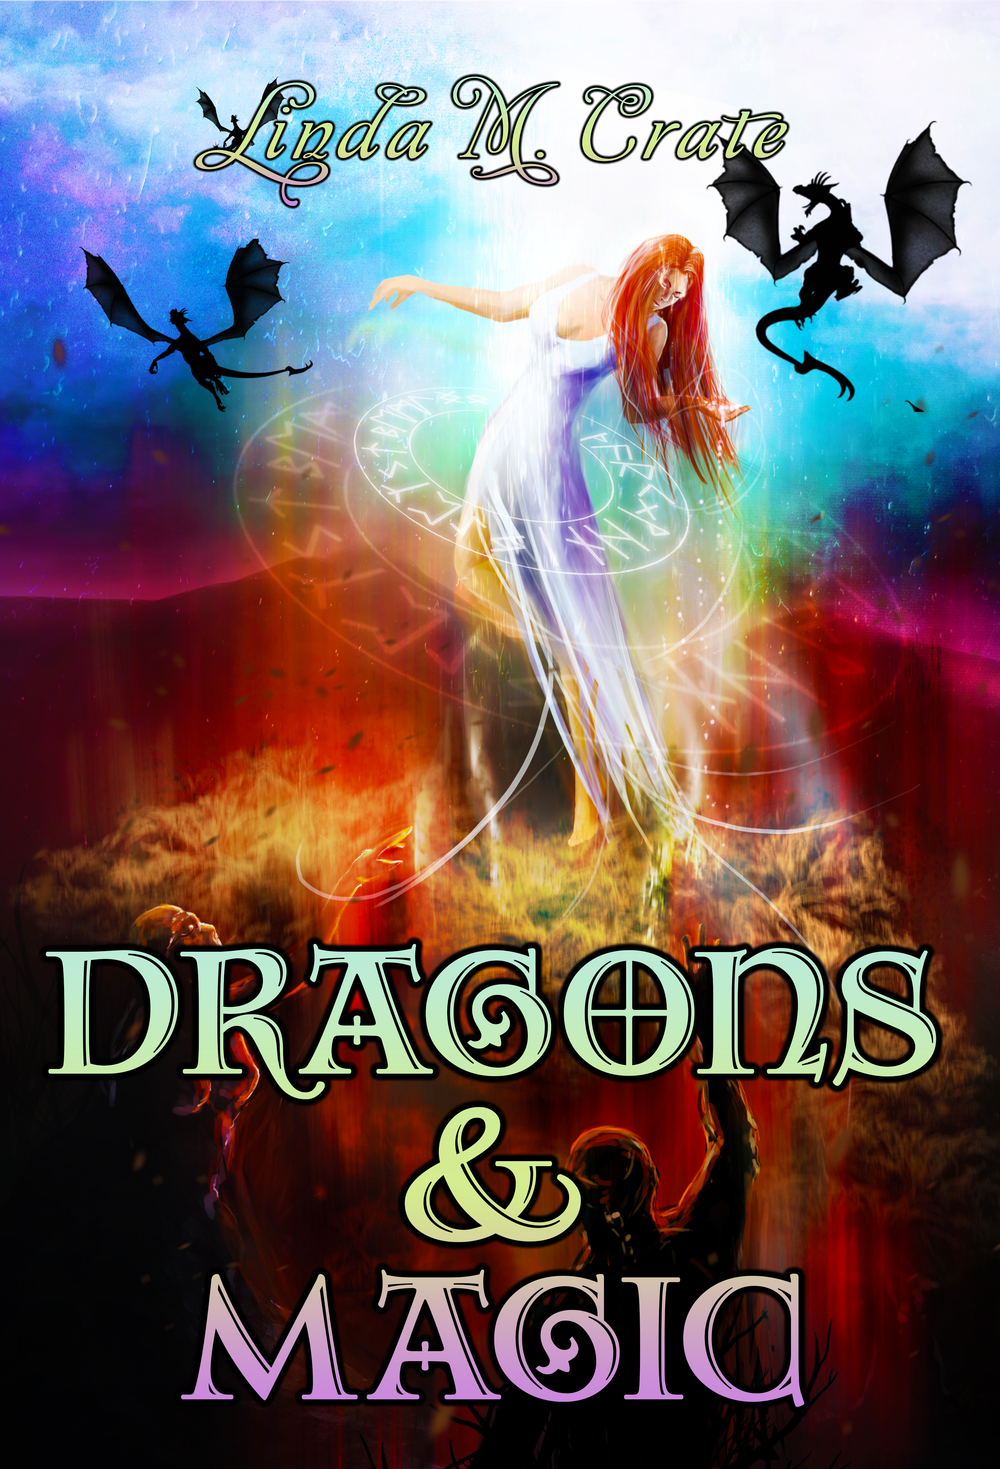 Dragons & Magic by Linda M. Crate, 2015